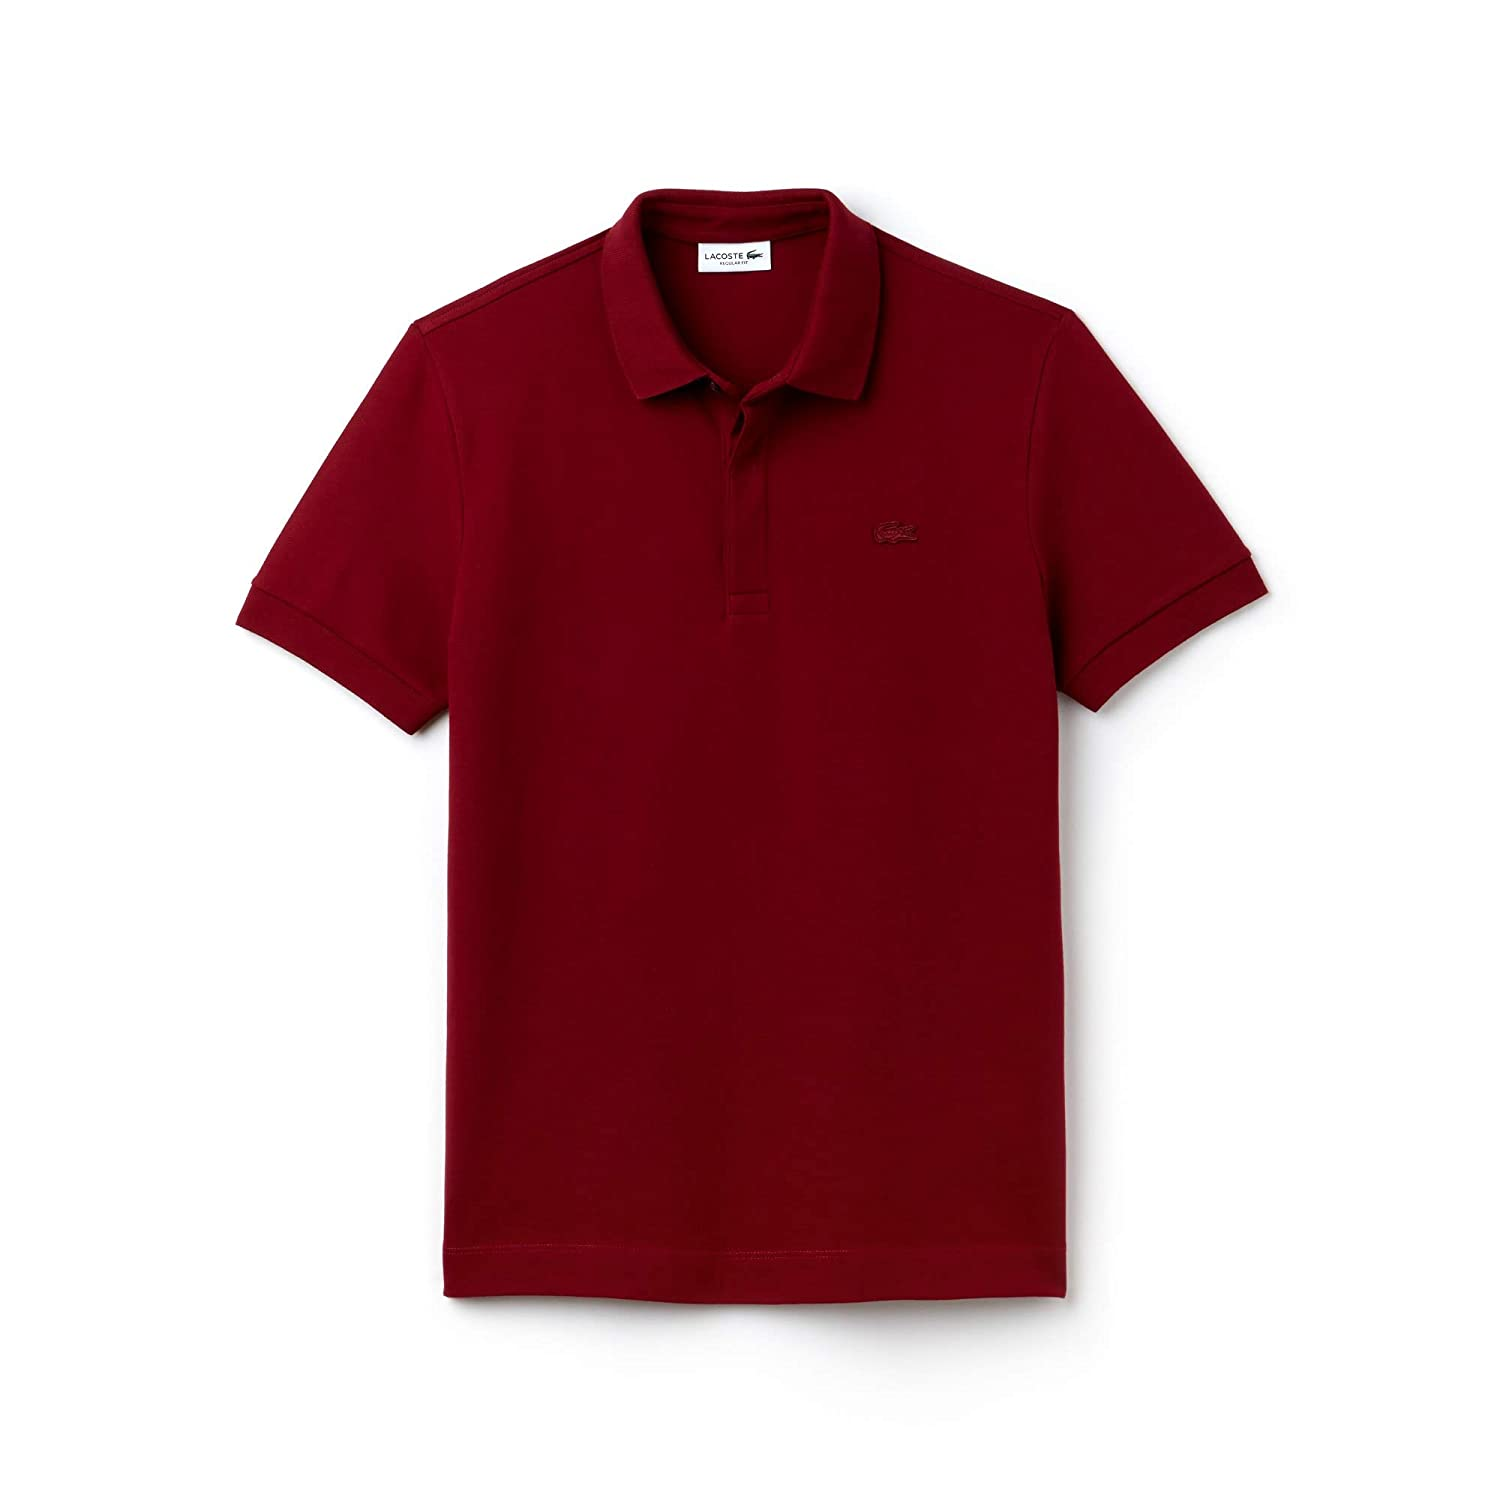 Rouge (Bordeaux 476) S Lacoste, Paris Polo Homme